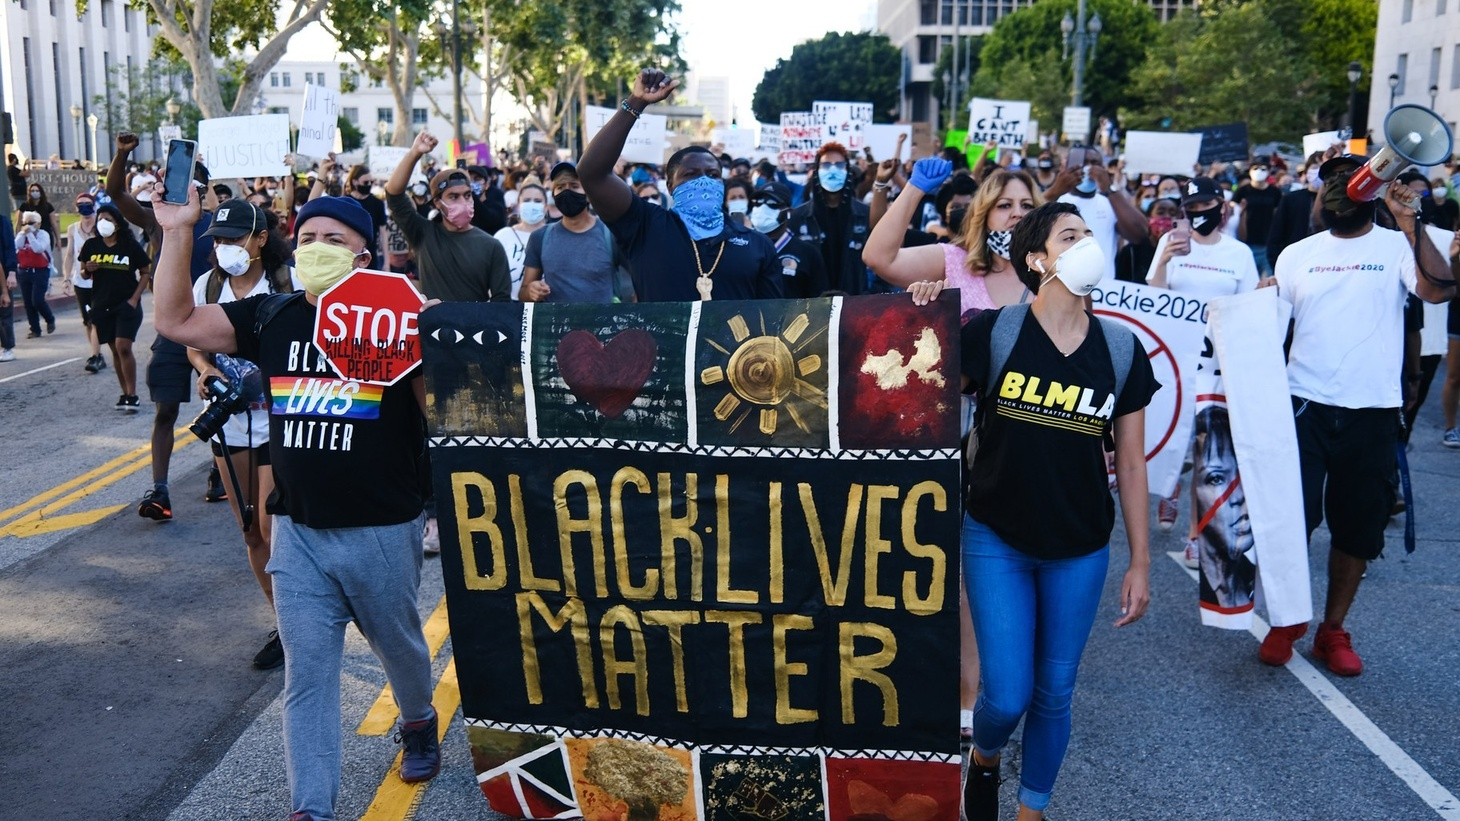 Members of Black Lives Matter LA protested through Civic Center near LAPD headquarters and LA City Hall, May 2020.